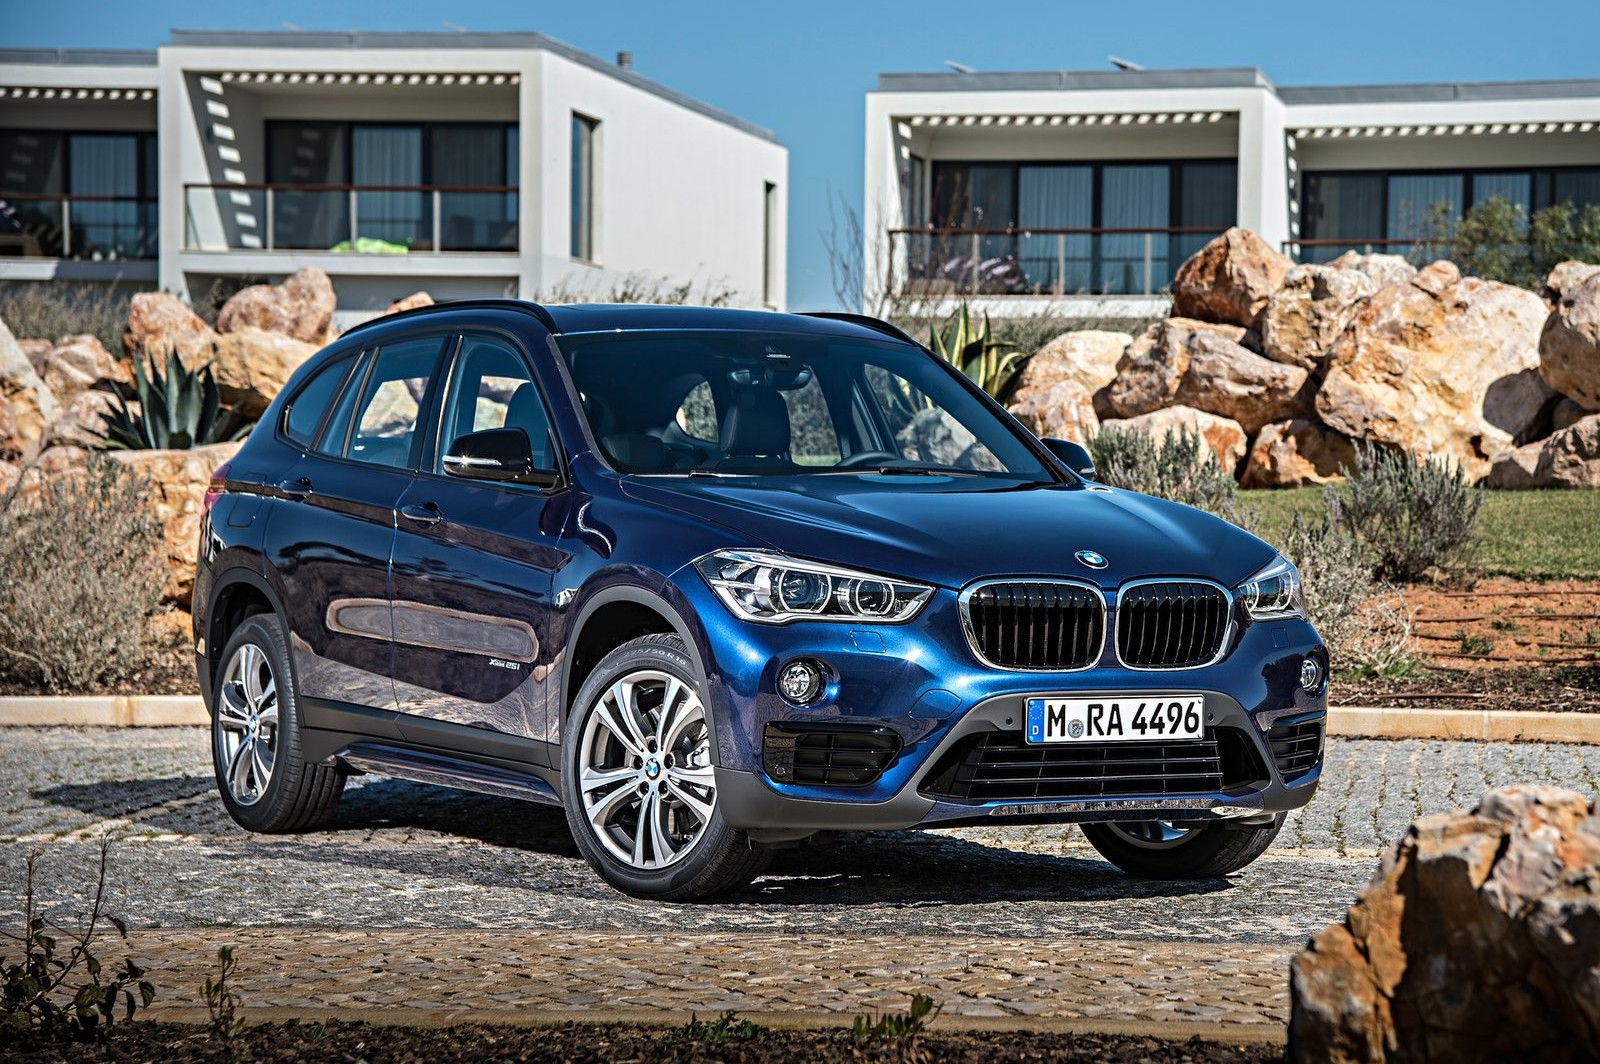 The X1 is the starting point for BMW's crossover range; it's all-new for 2016.